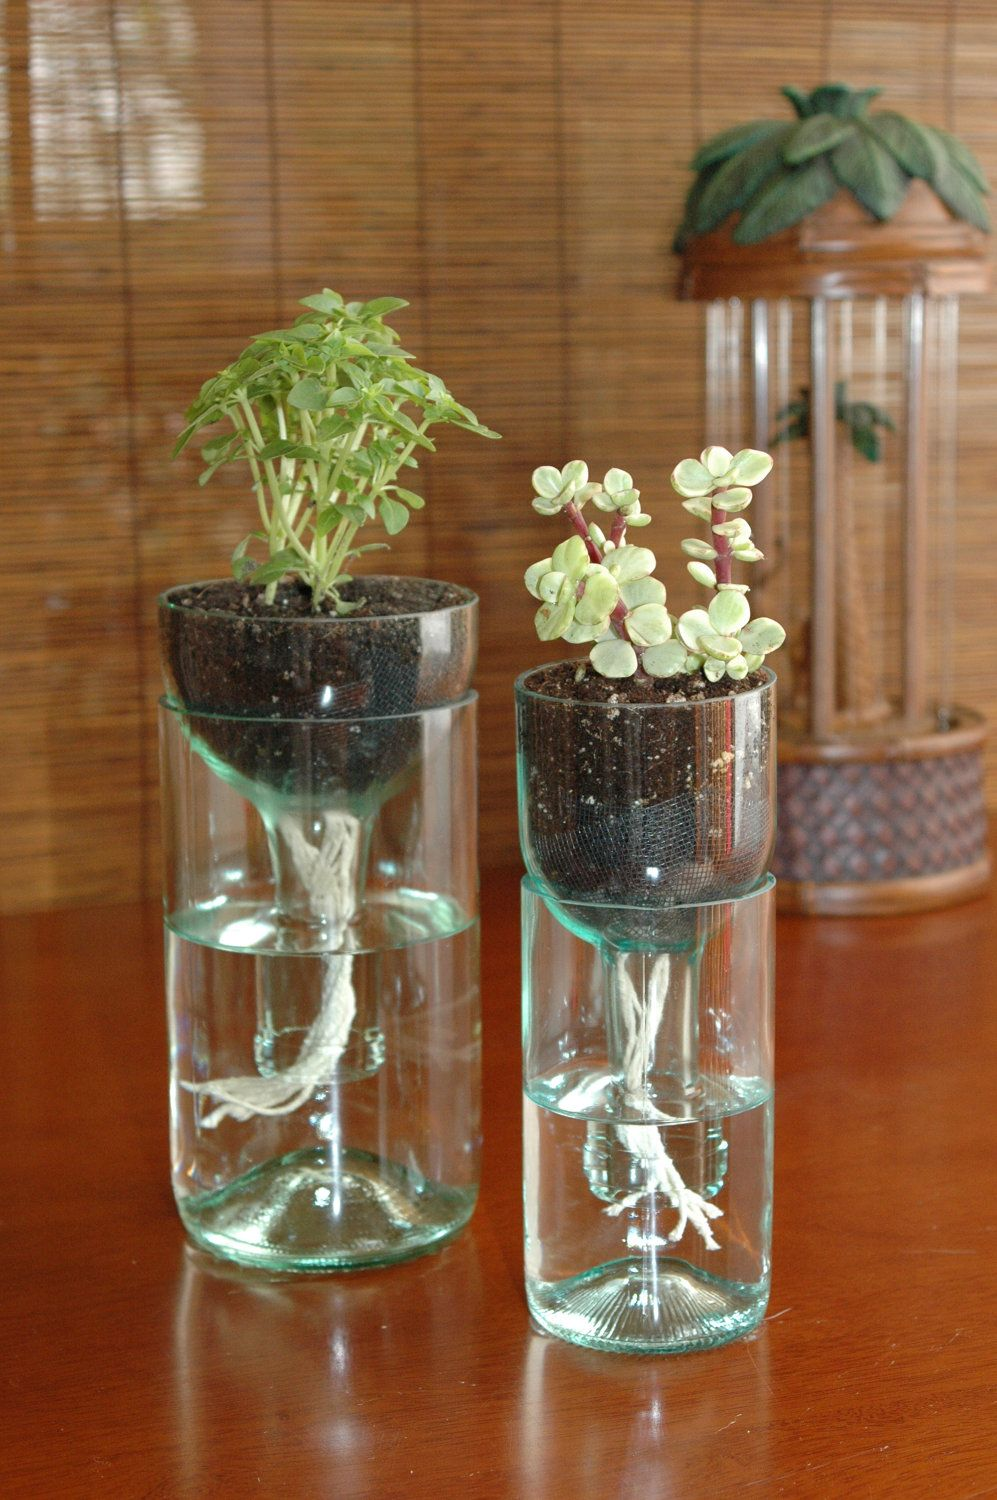 Self watering planter made from recycled wine bottle random cool